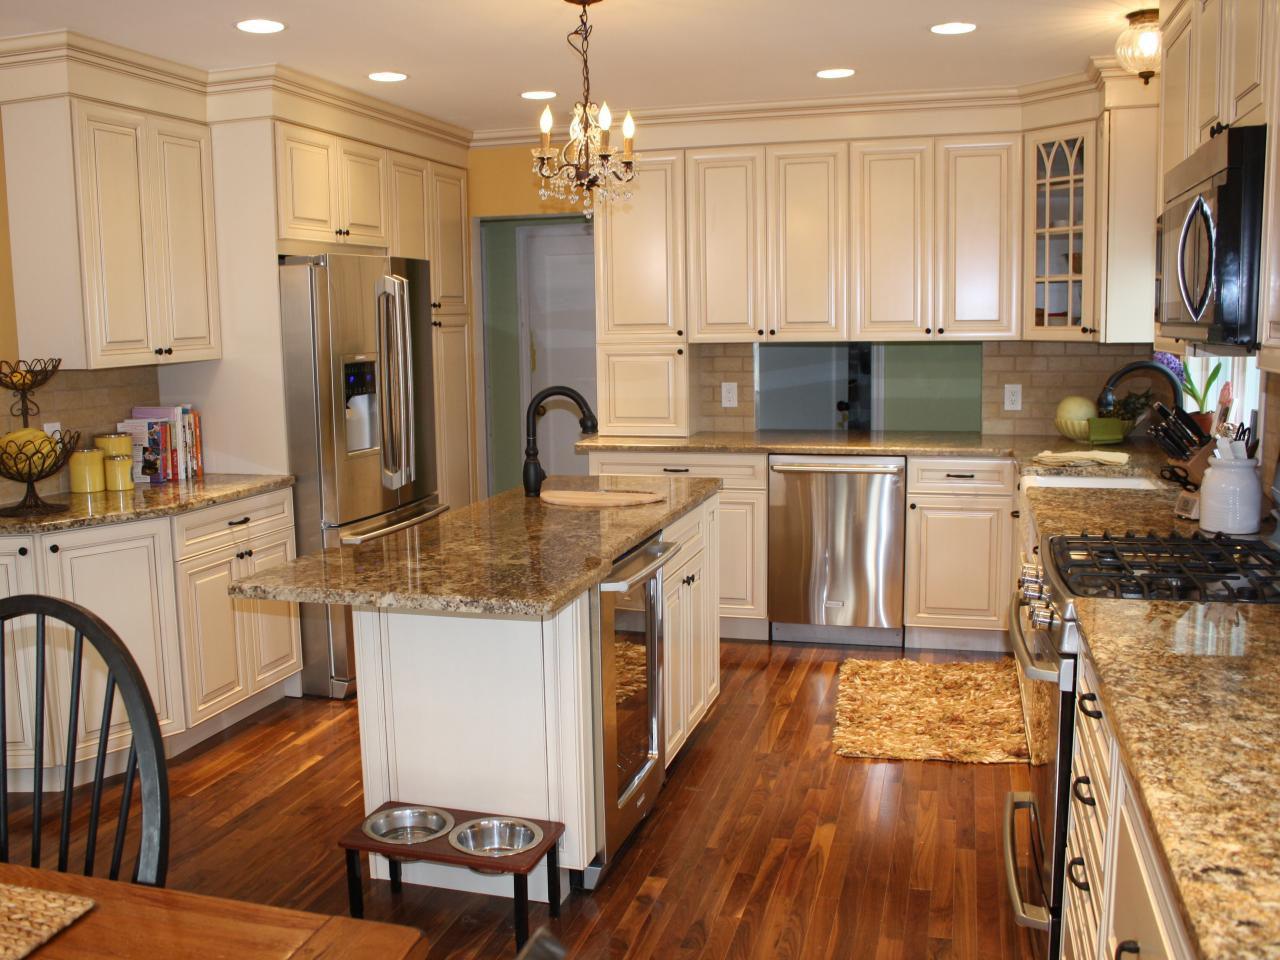 Kitchen Remodel Ideas Beauteous Costcutting Kitchen Remodeling Ideas  Diy Decorating Design